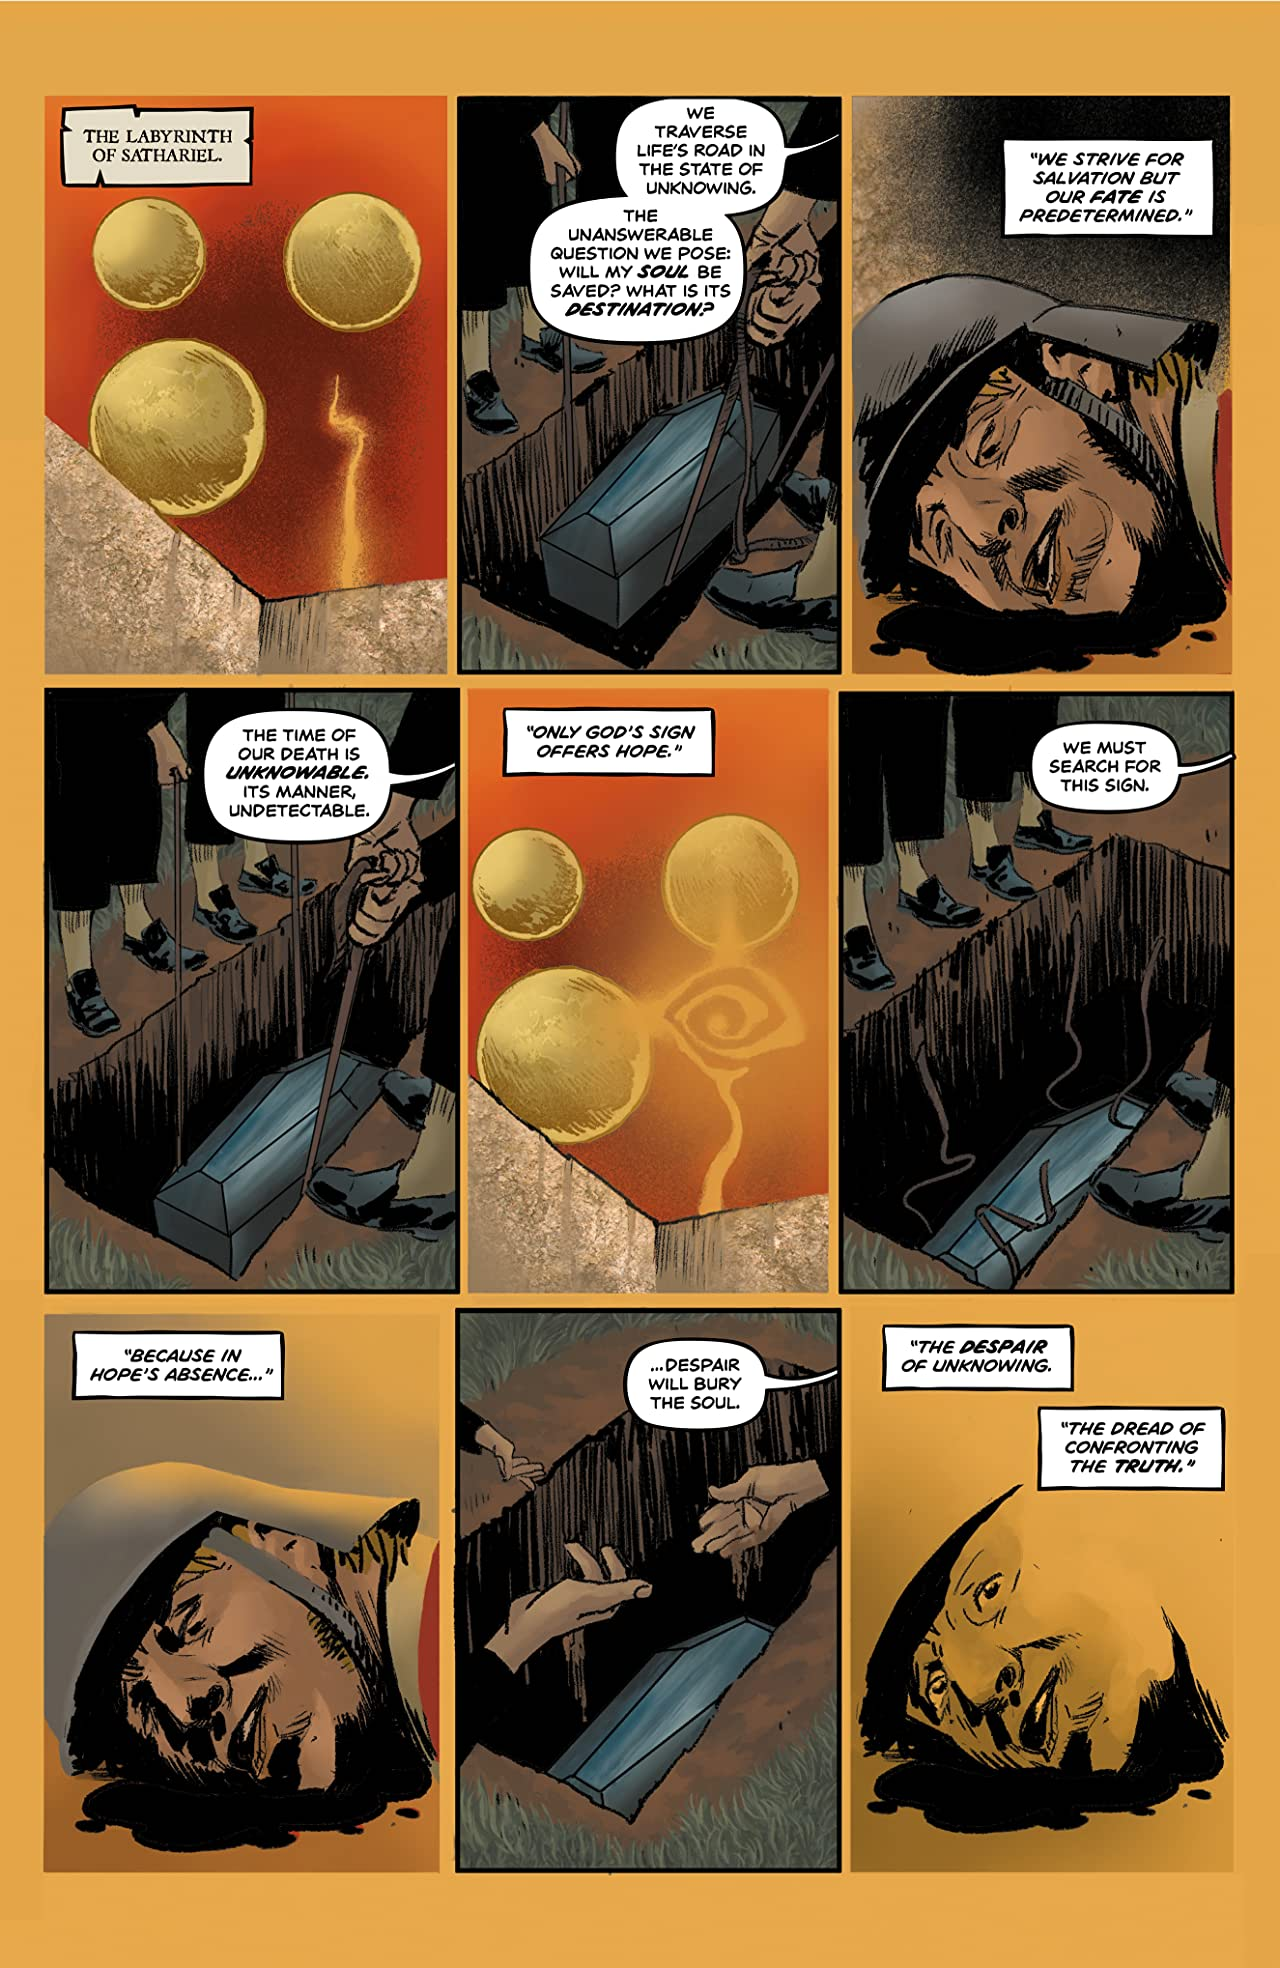 Planet of Daemons #4